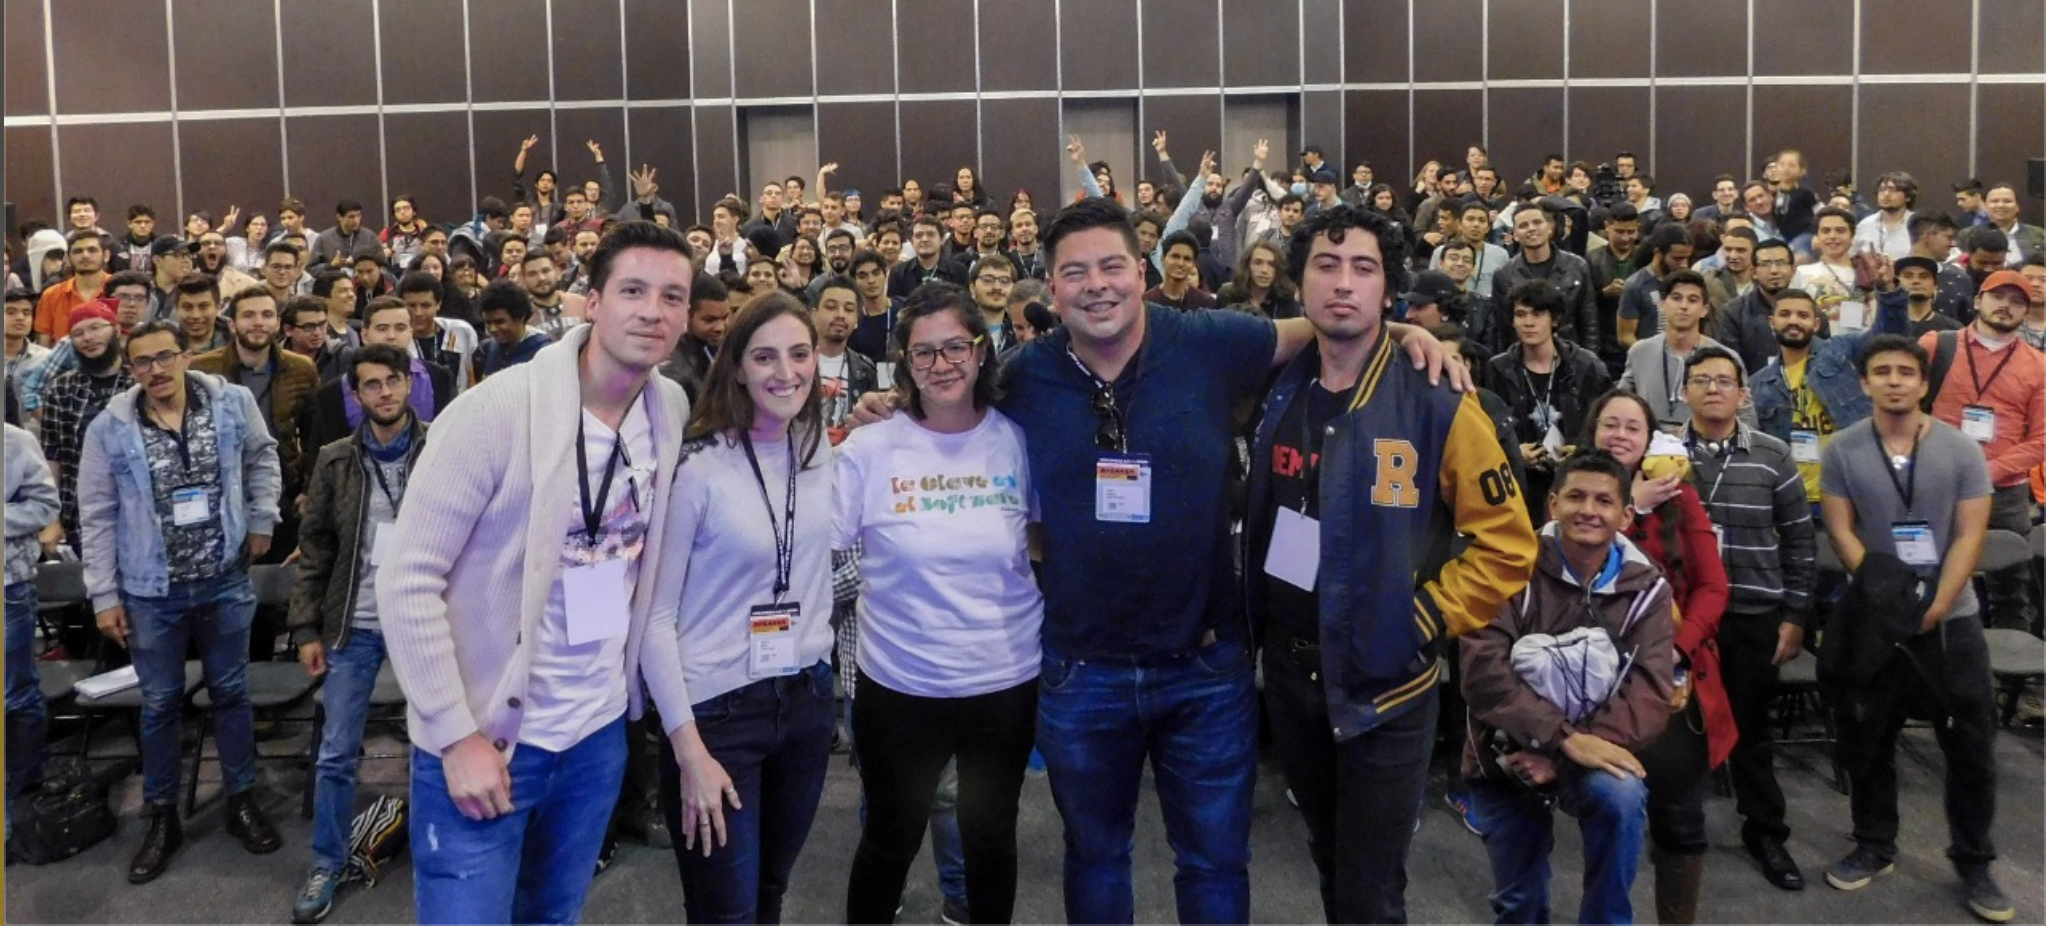 Colombia 4.0, fedesoft, videojuegos, tan grande y jugando, Sandra Castro, David Vega, Rockstar, Mariana Botero, Criterion Games, Electronic Arts, Jairo Sanchez, Blizzard Entertainment, y Daniel Cabrera, Rocket Ride Games,